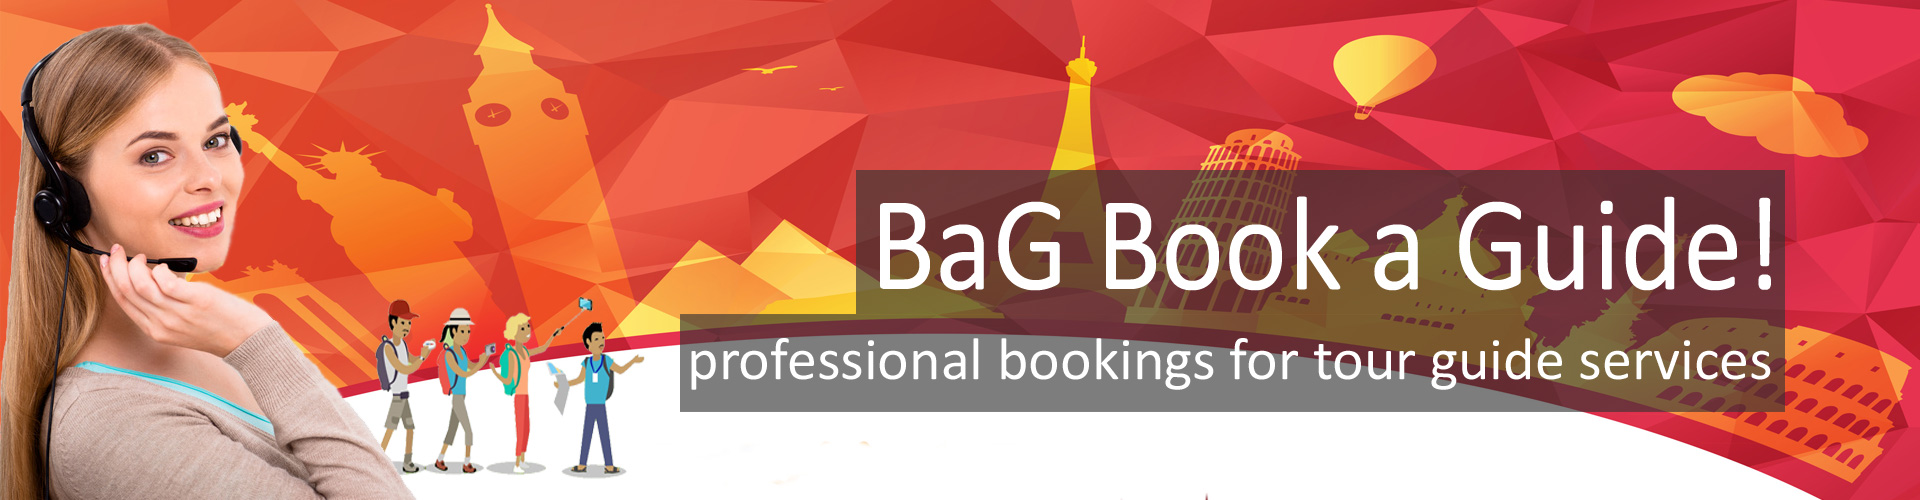 bag-book-a-guide-red-text